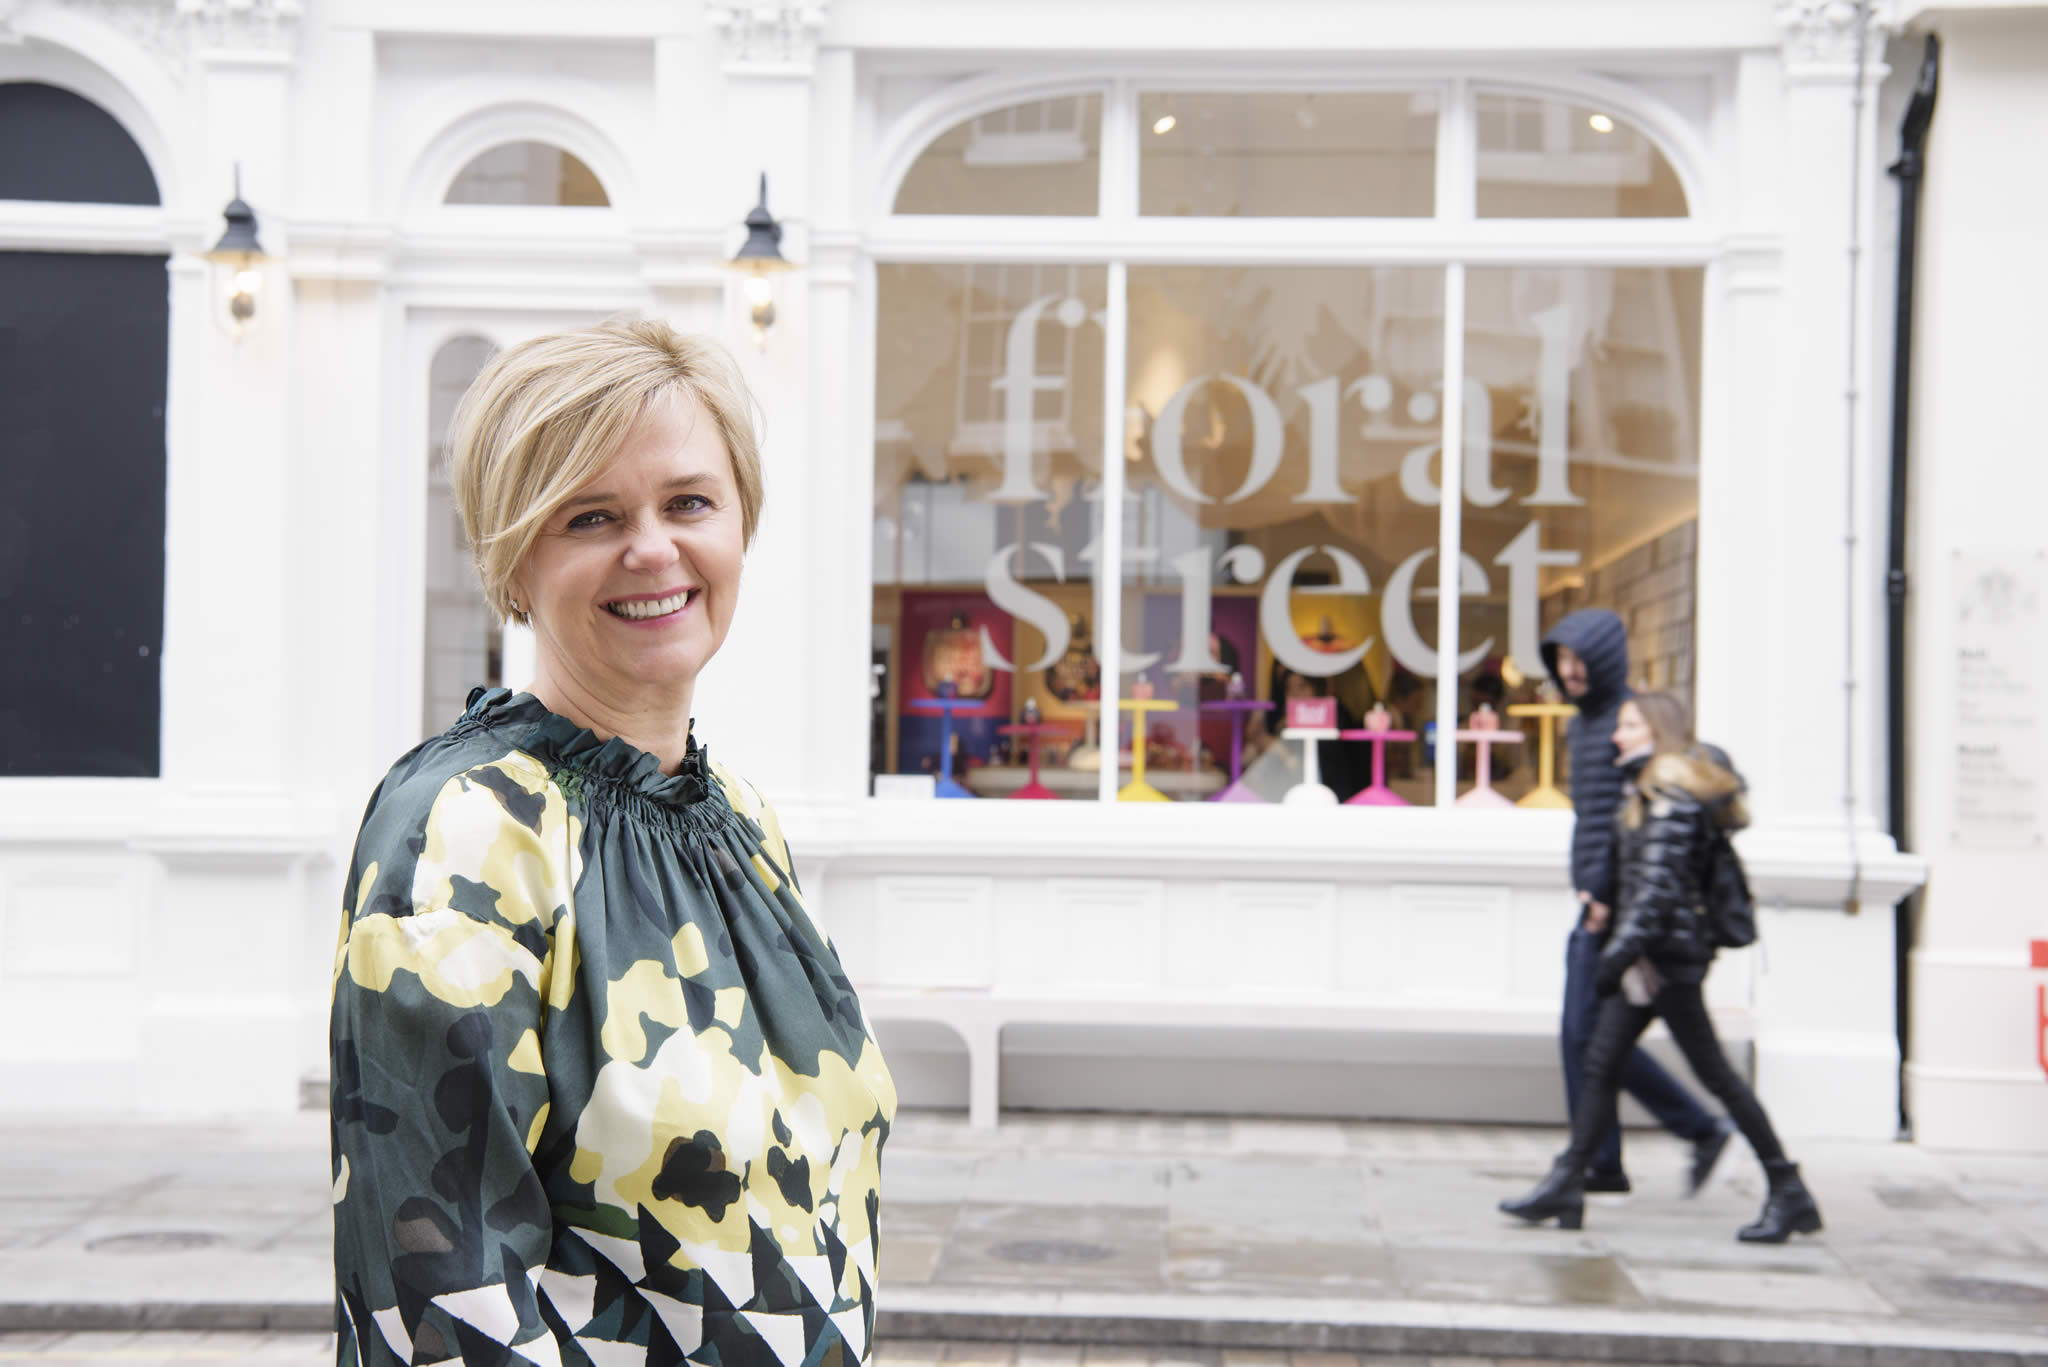 Michelle Feeney founder of Floral Street putside the flagship store in Covent Garden, London